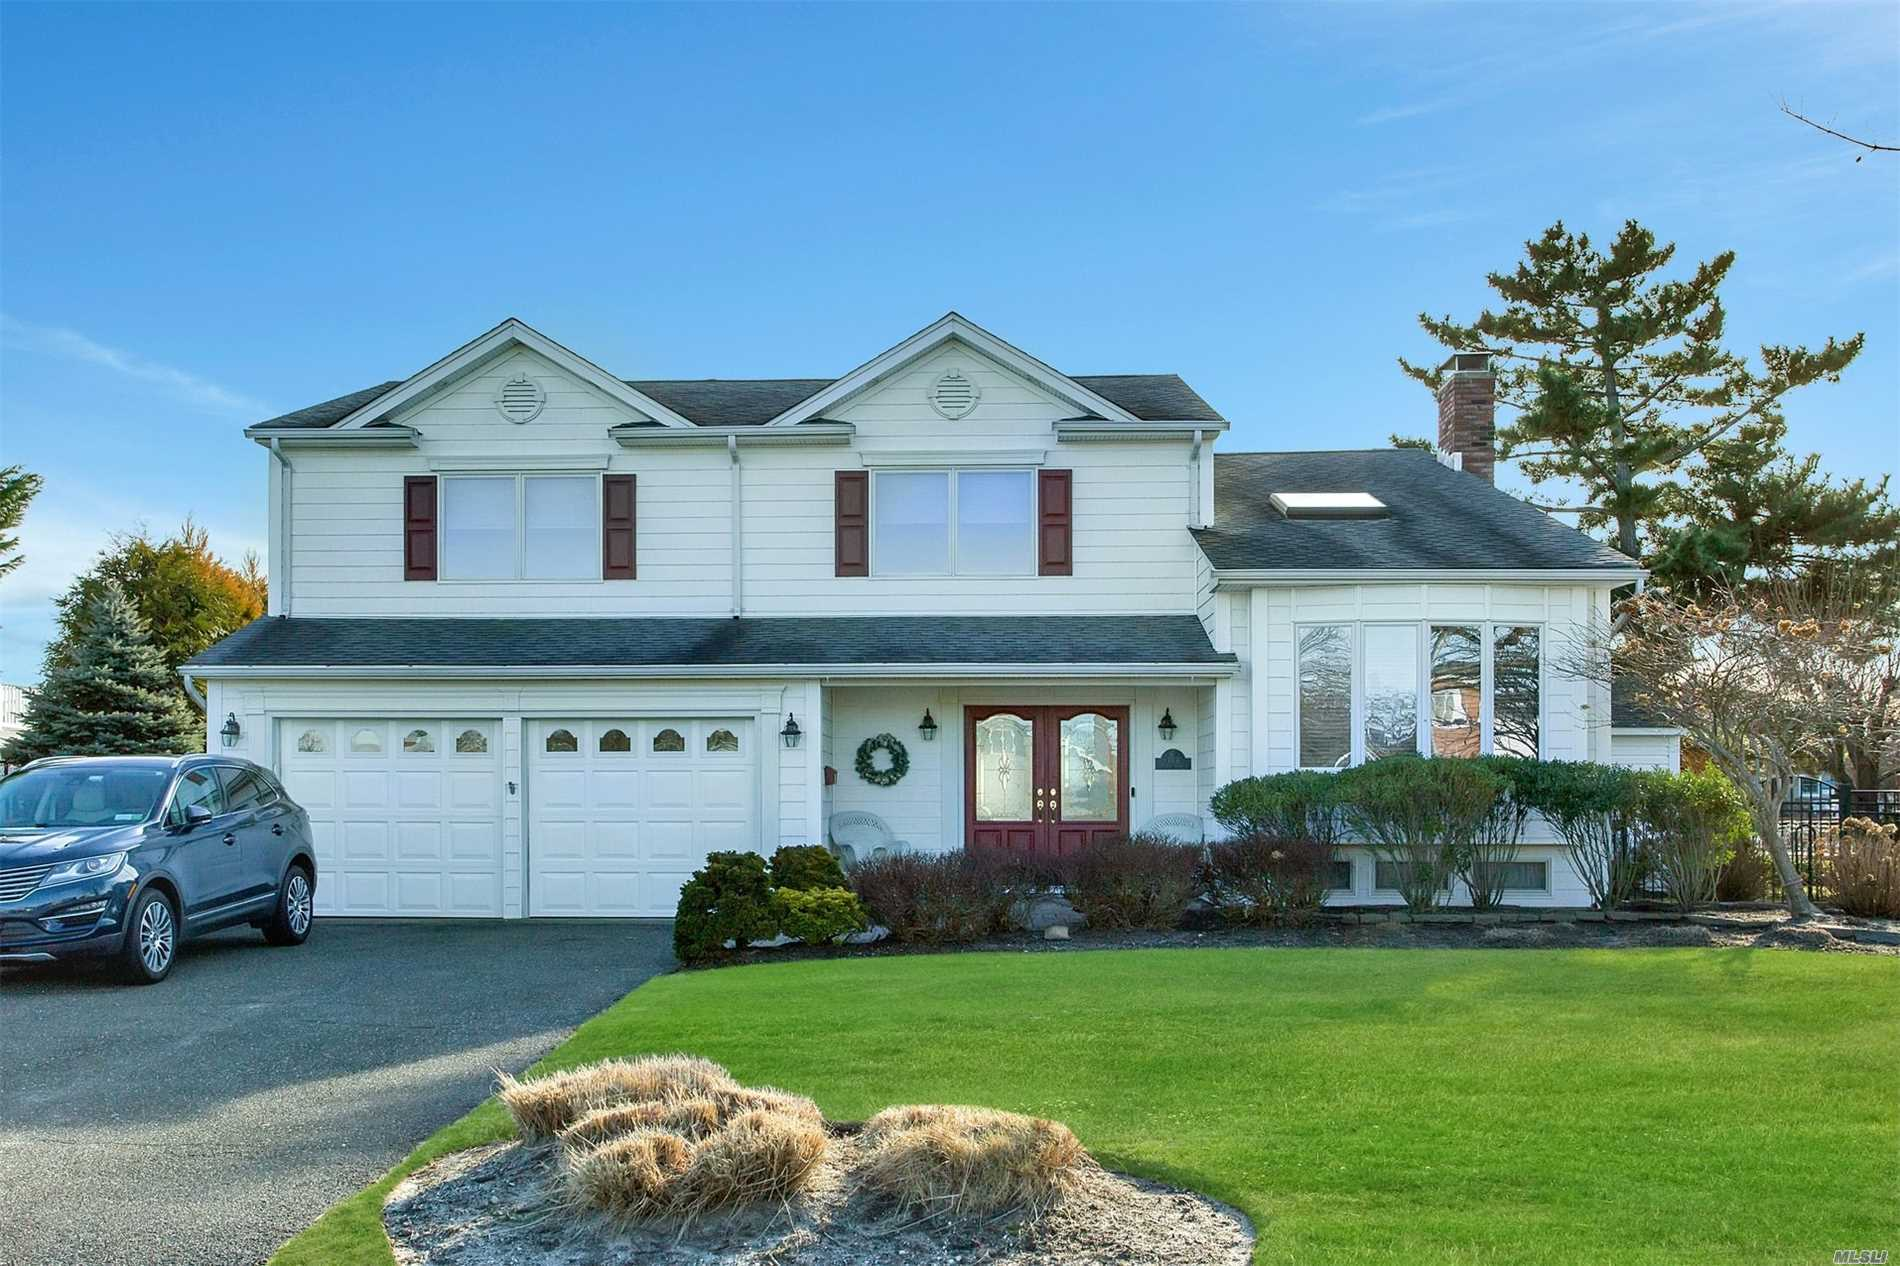 Beautifully Renovated Waterfront Colonial Splanch In Captree Landings W/80'Of Bulkheading & 24' X 40'Igp. Ef W/Porcelain Tile, 1/2 Bath, Fdr, Eik Redone In 2007 W/Porcelain Floor, Granite Counters, Cherry Cabinets & Ss Appliances, Laundry Area Into 2-C Garage.2nd Fl Has Living Room W/Cath Ceiling & Skylight. 3rd Floor Has Mbr W/New Mbth, 3 More Brs & Redone Bath W/Air Tub.